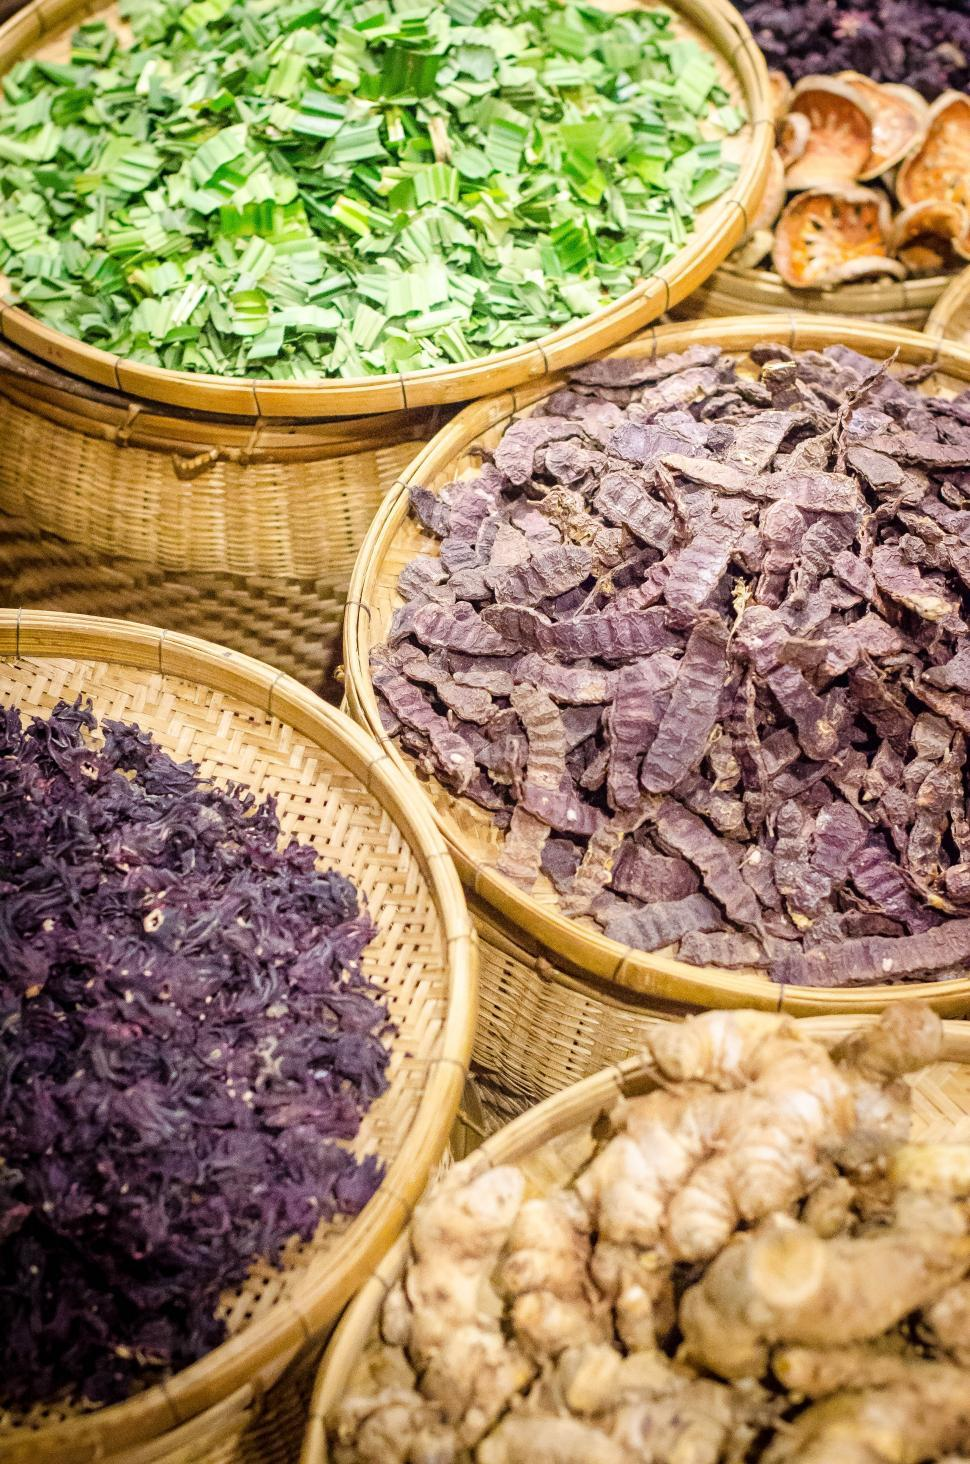 Download Free Stock HD Photo of Thai Herb baskets Online